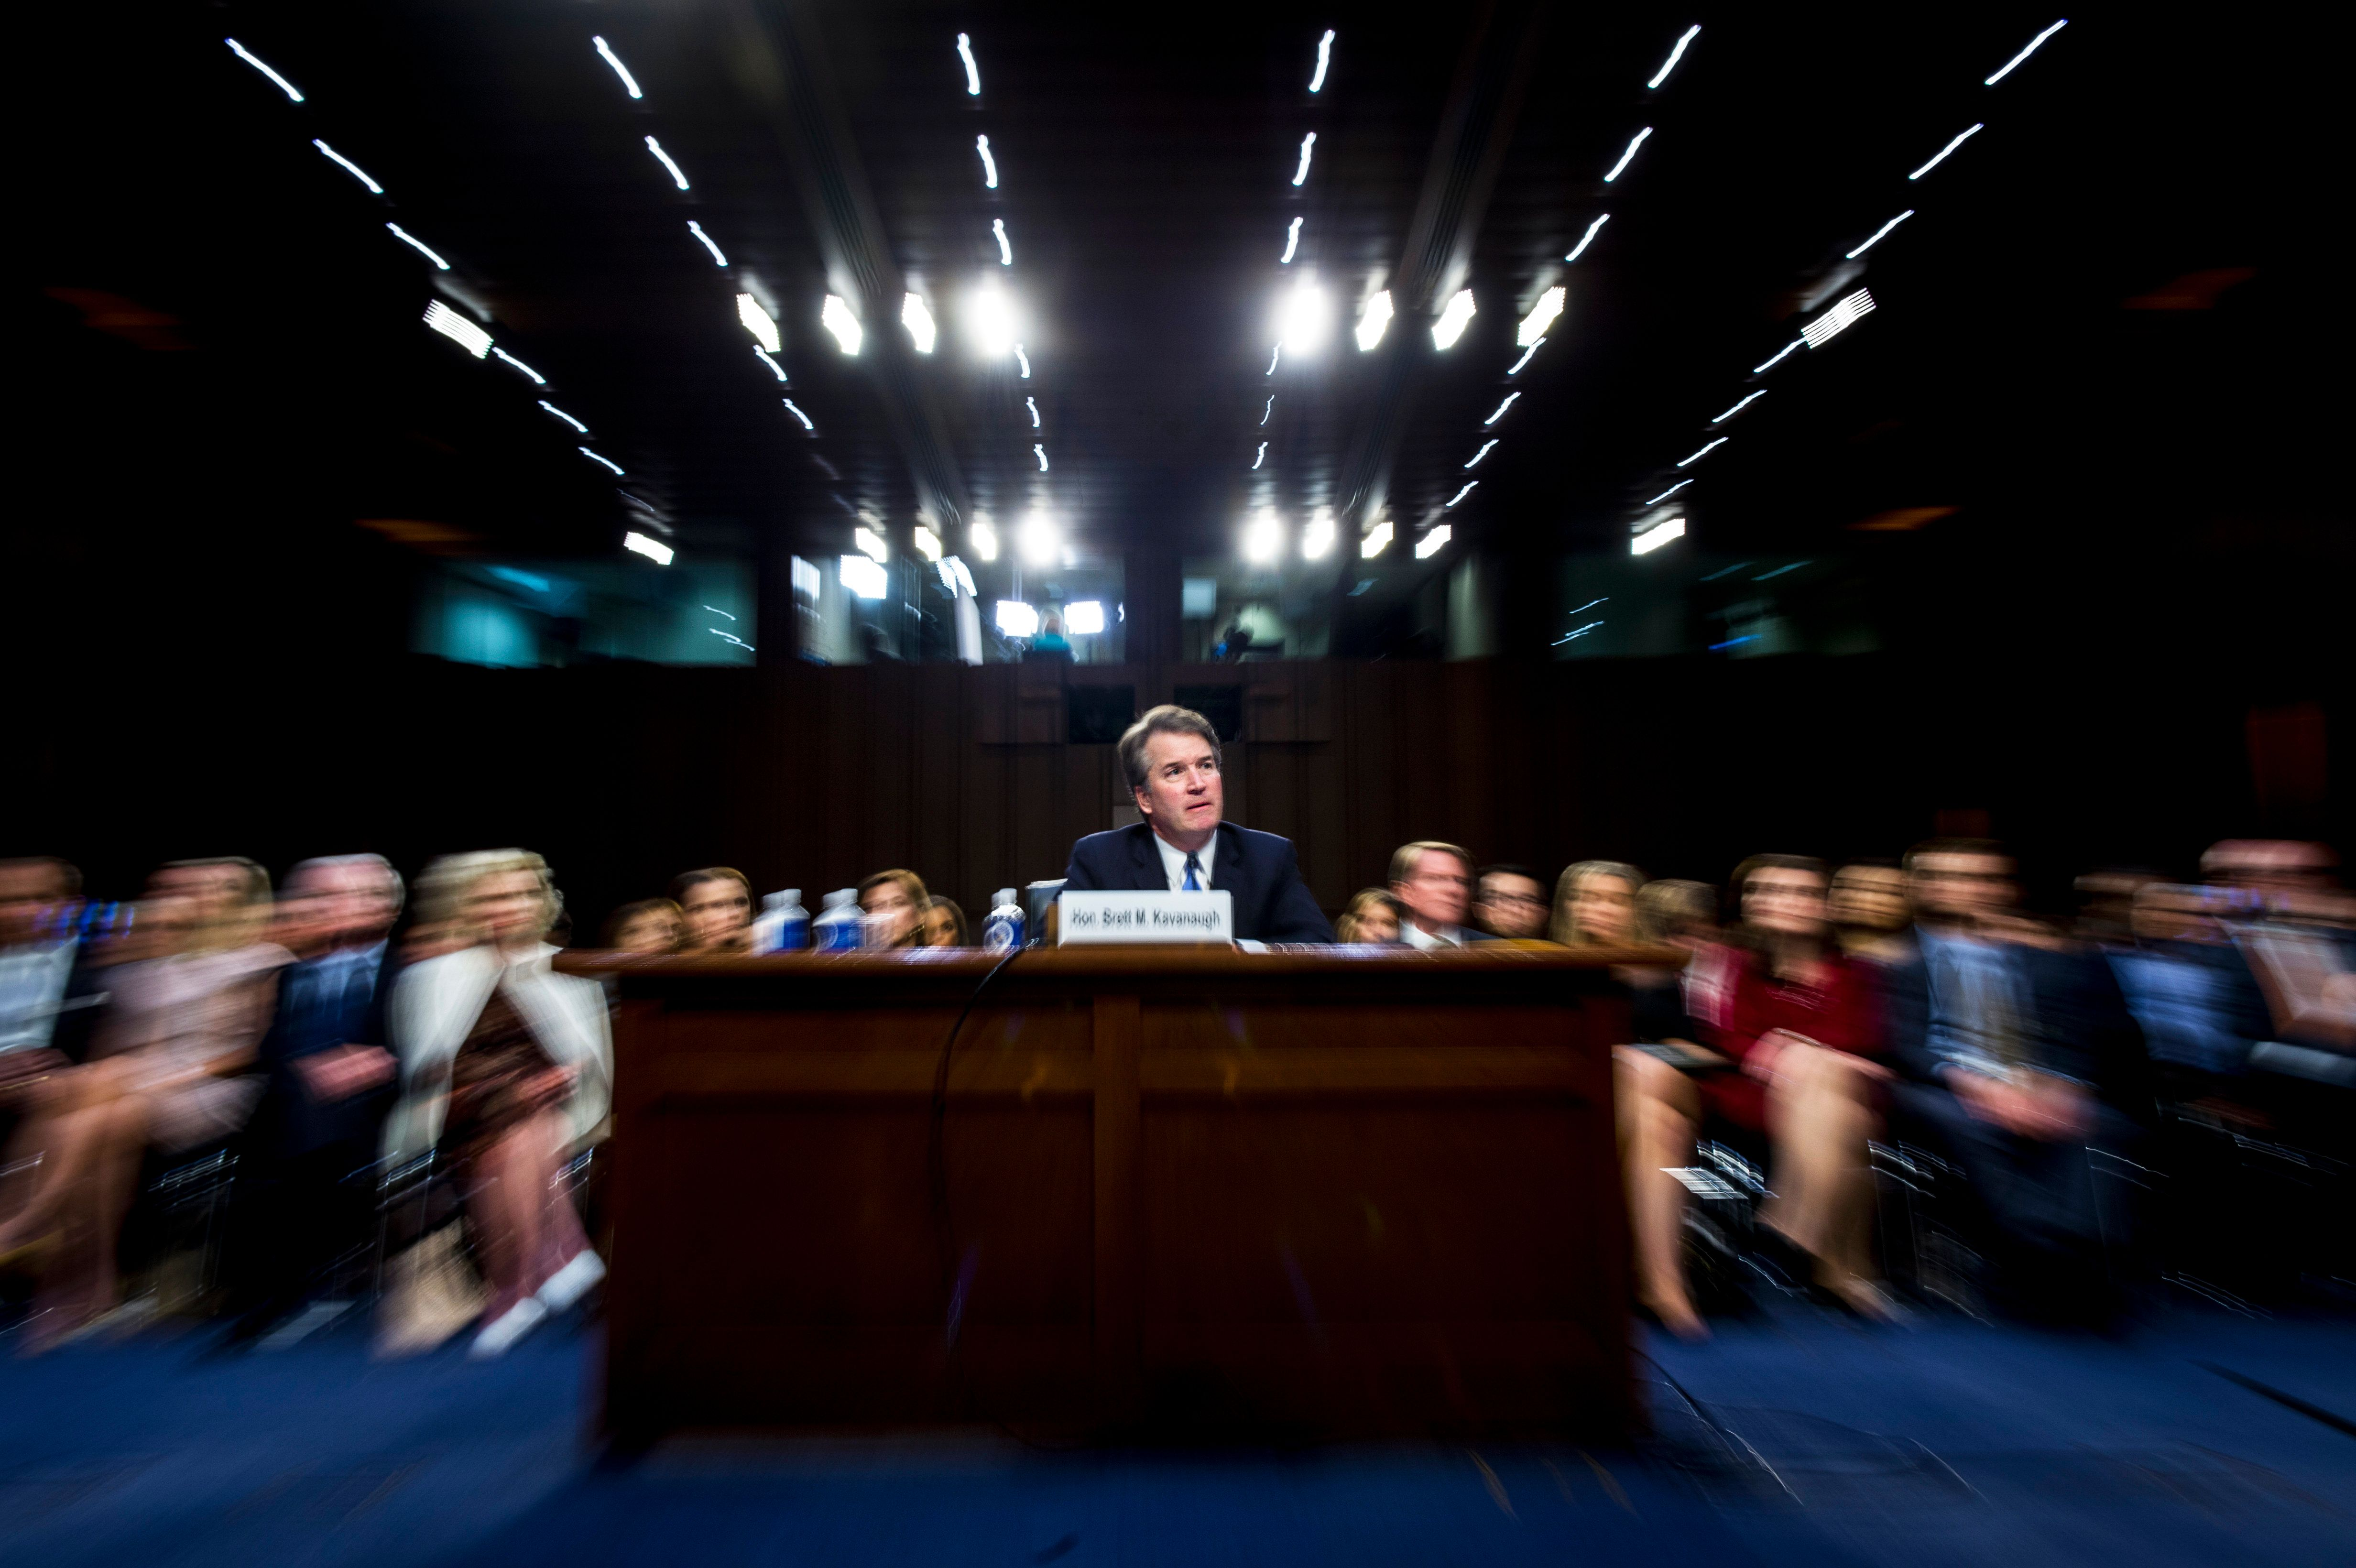 Supreme Court nominee Brett Kavanaugh testifies before the Senate Judiciary Committee on Sept. 6, when his pathway looked cle